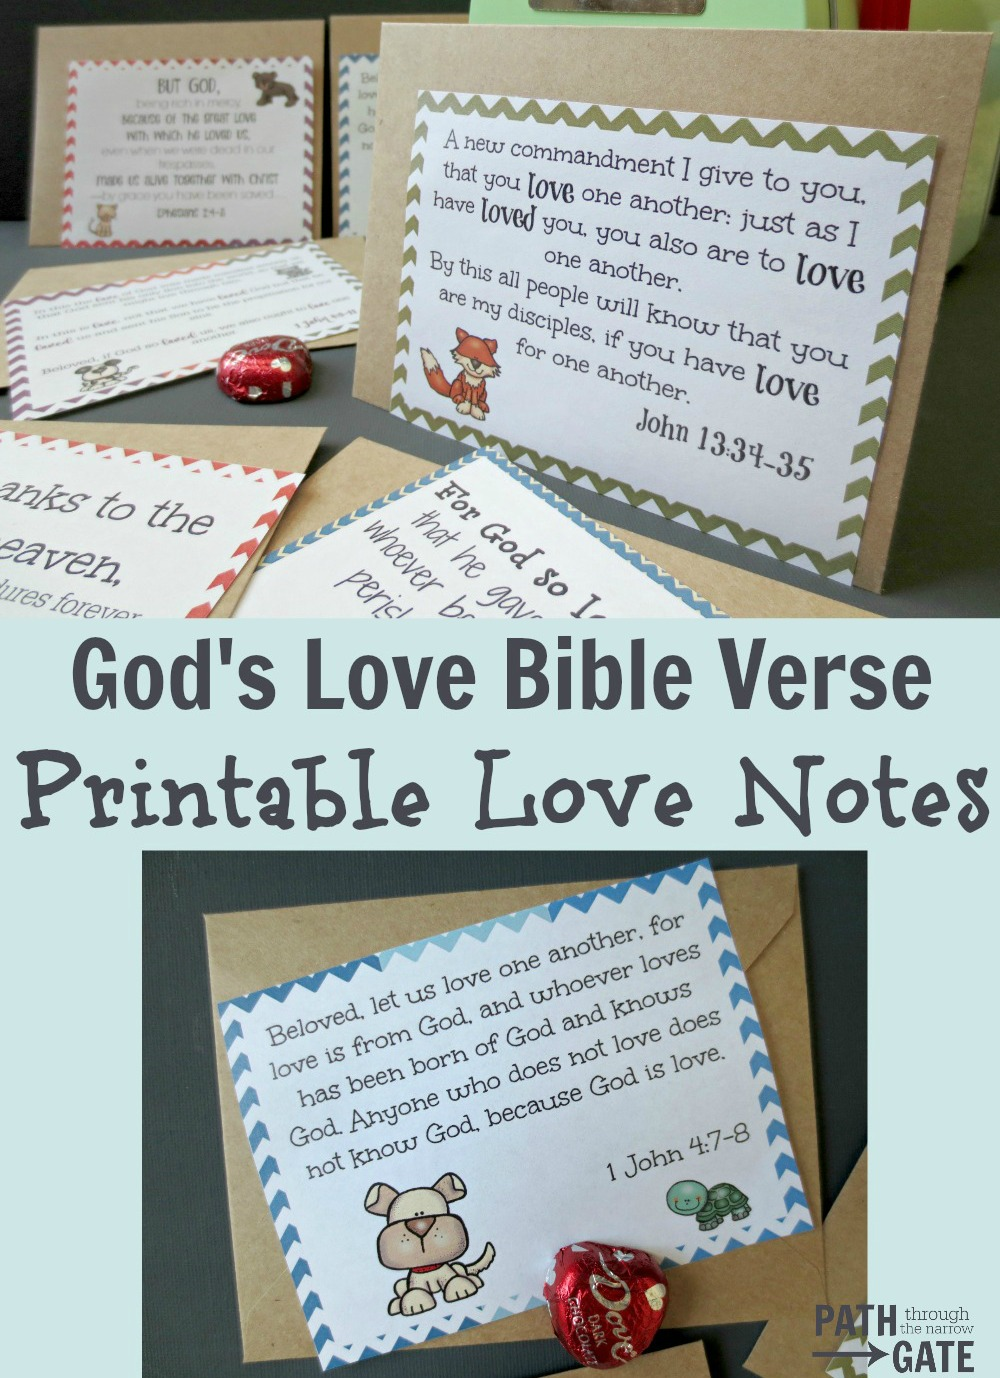 God's Love Note pop up image